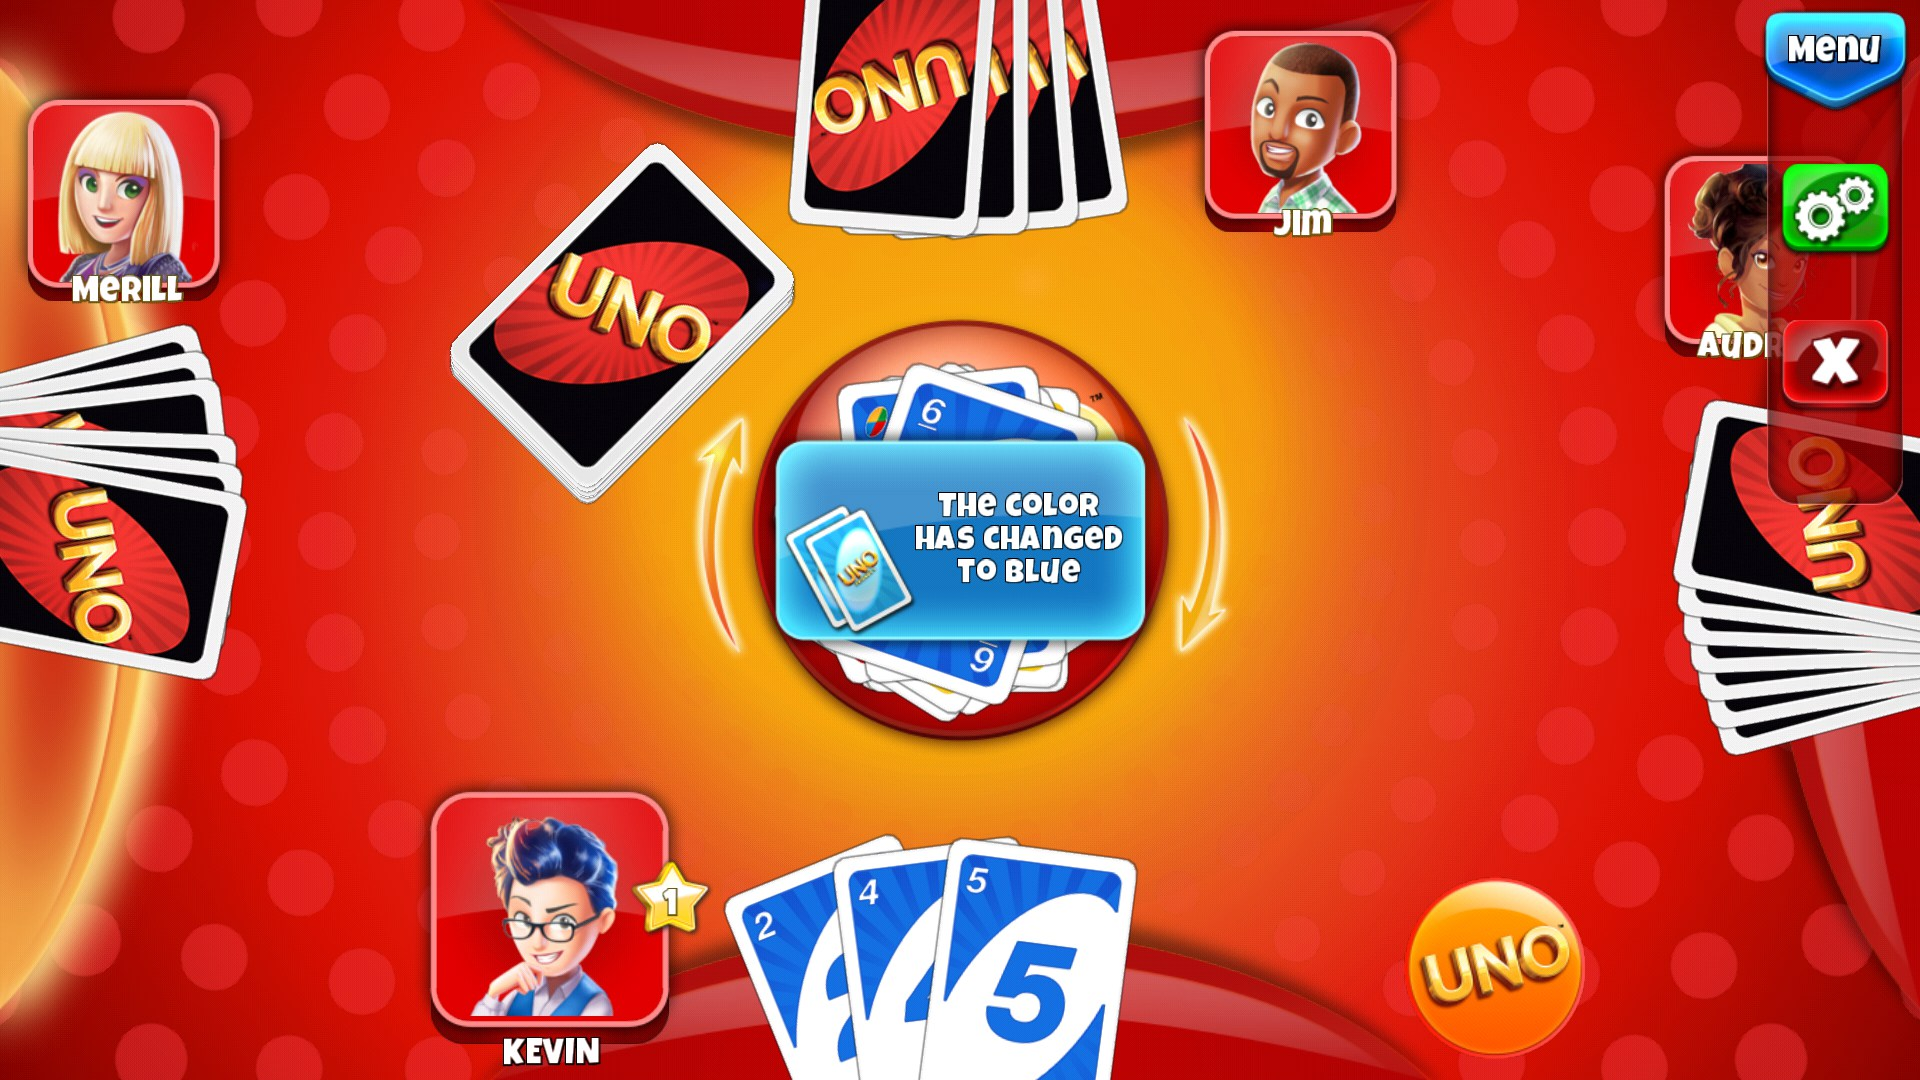 play uno on online for free